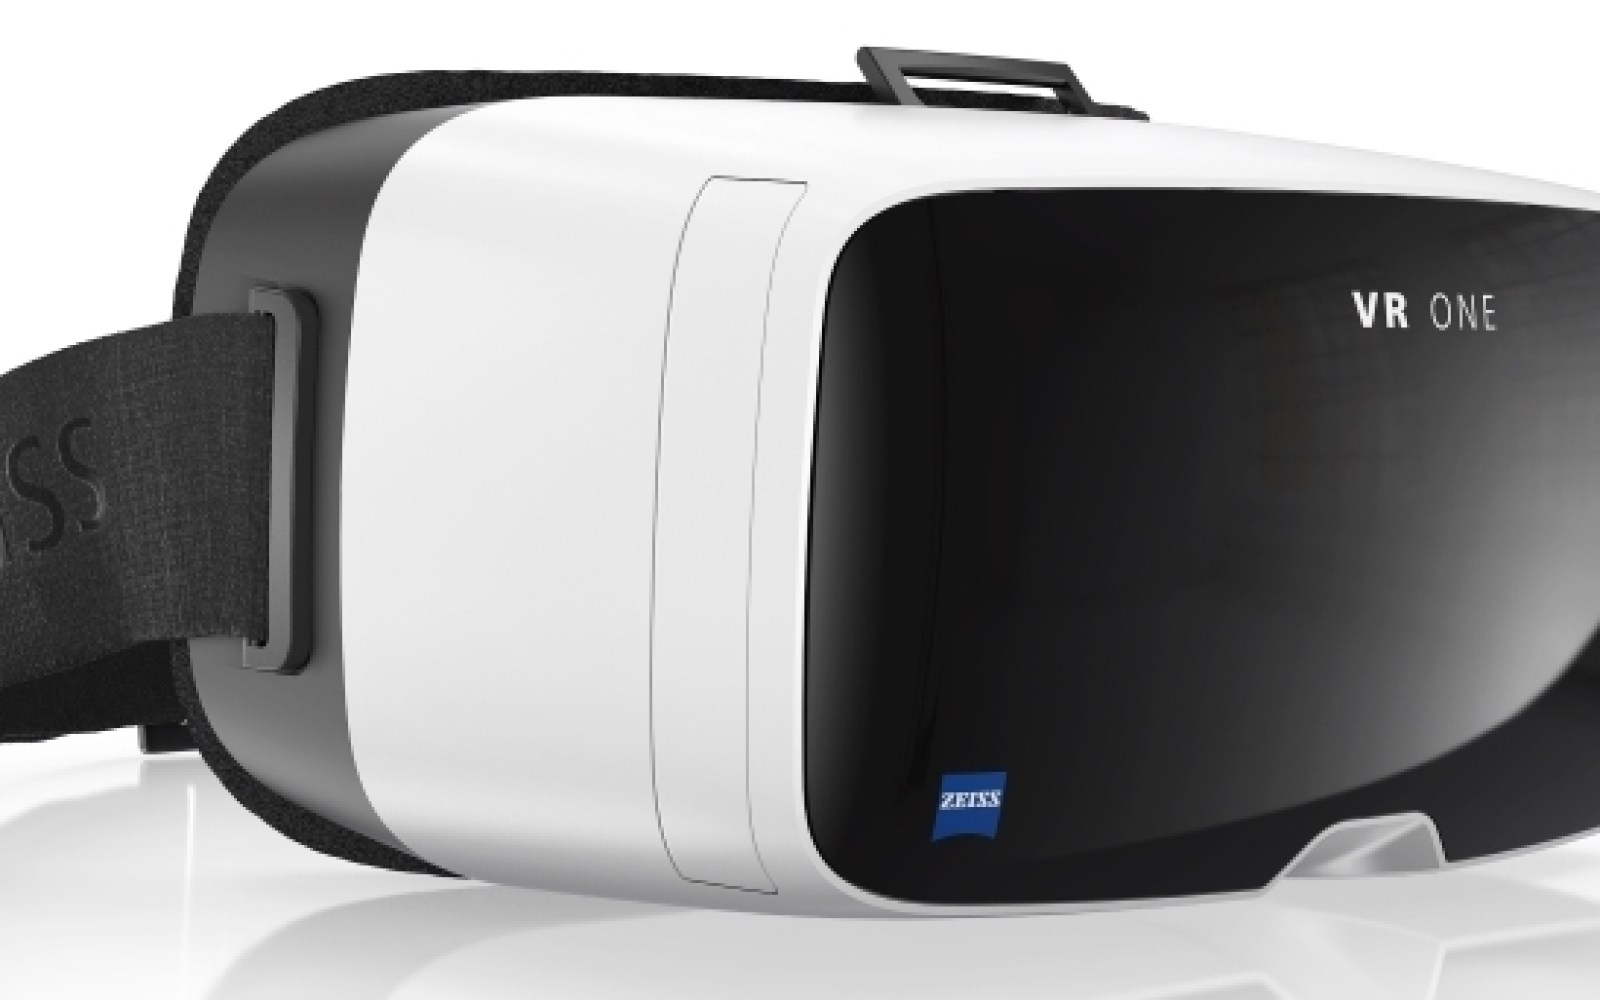 Carl Zeiss unveils its sub $100 virtual reality headset for iOS and Android